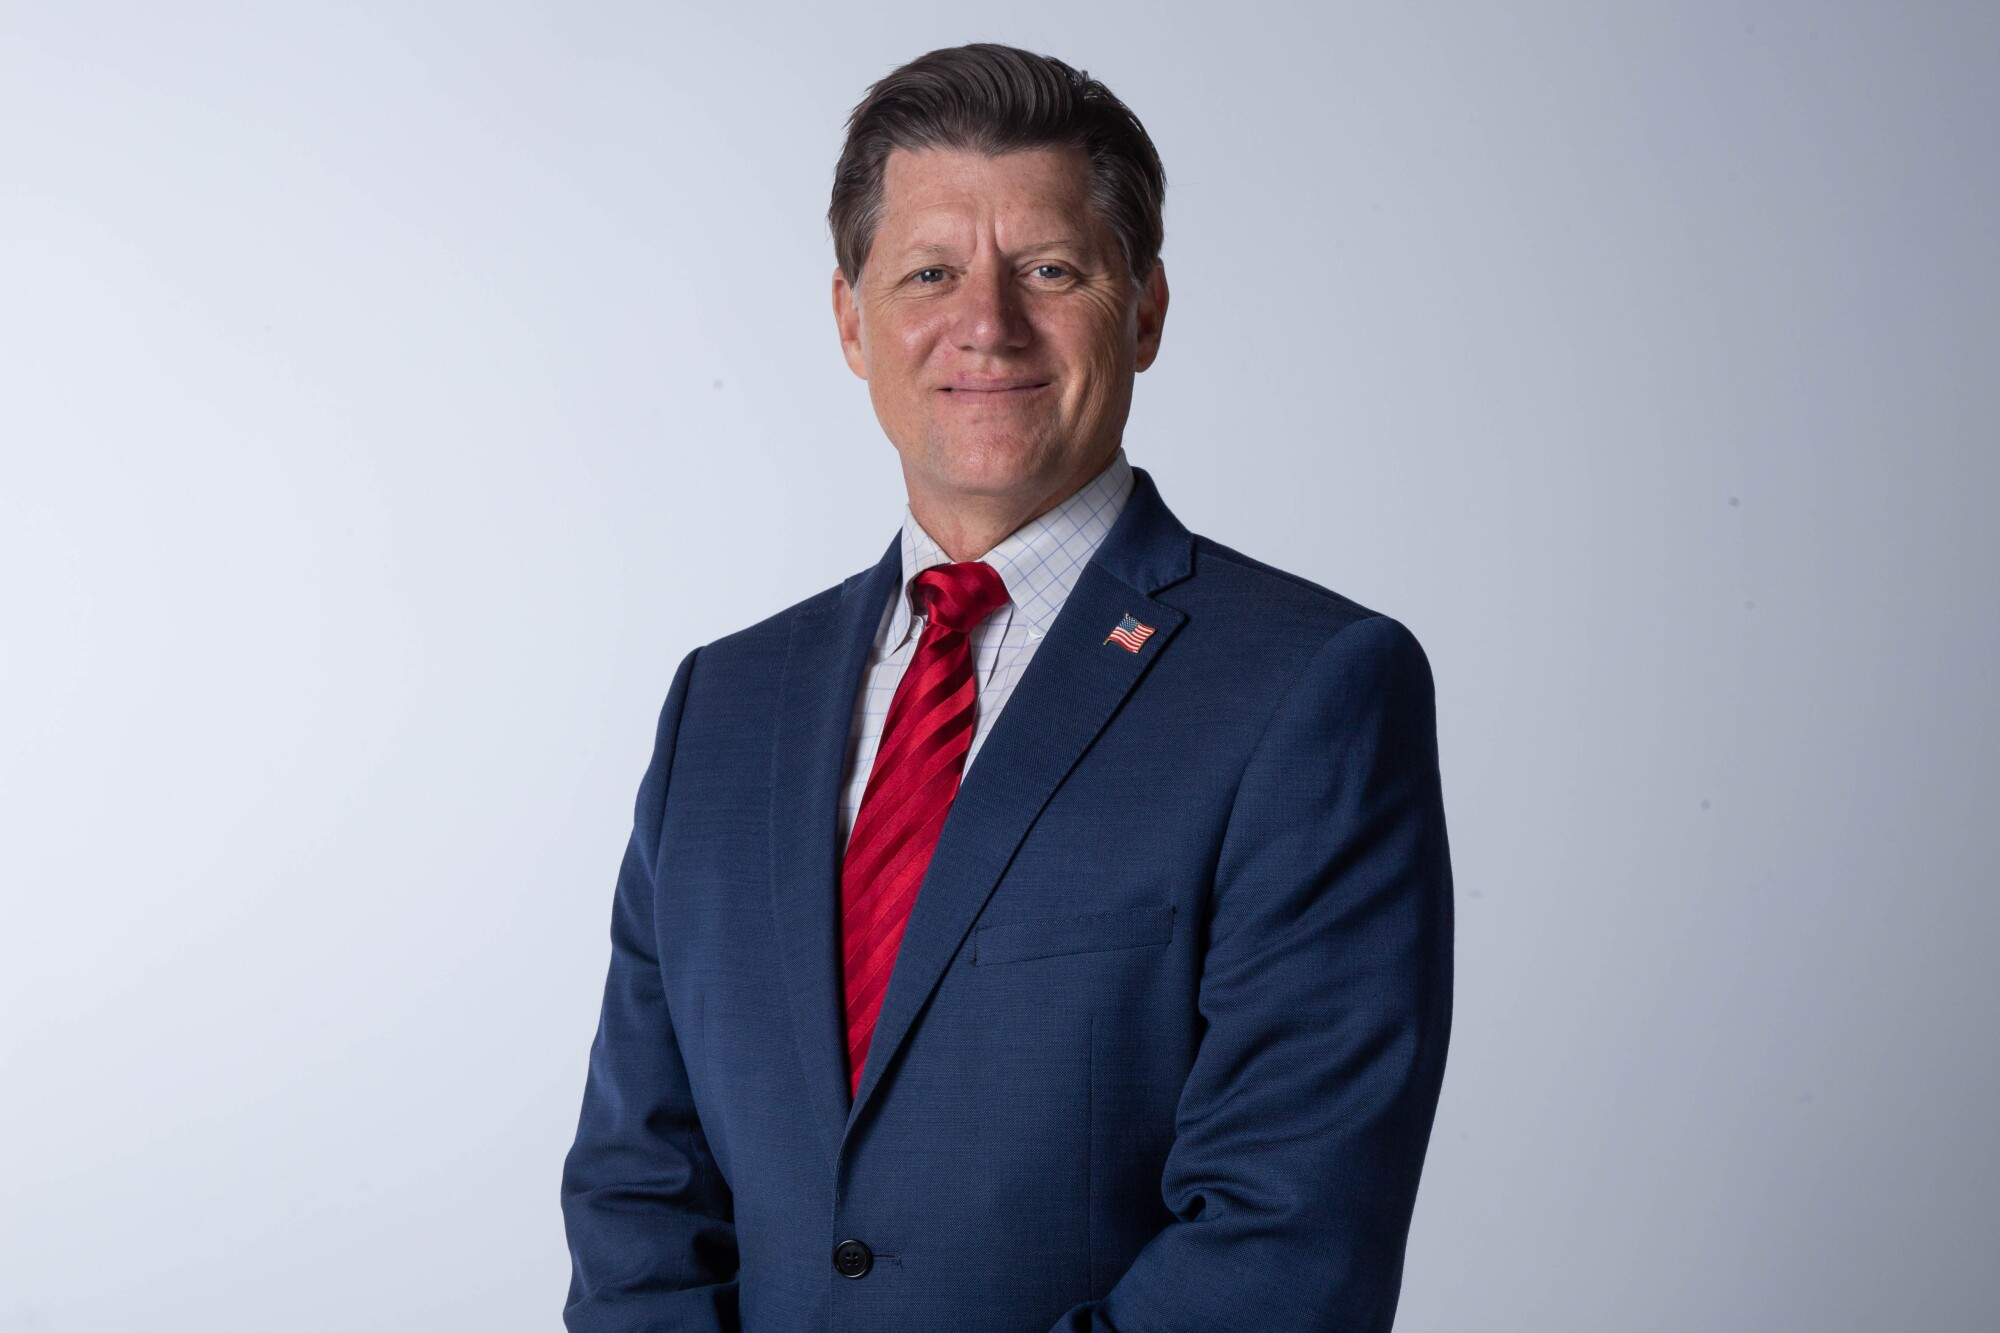 Brian Jones, Republican candidate in the 50th Congressional District